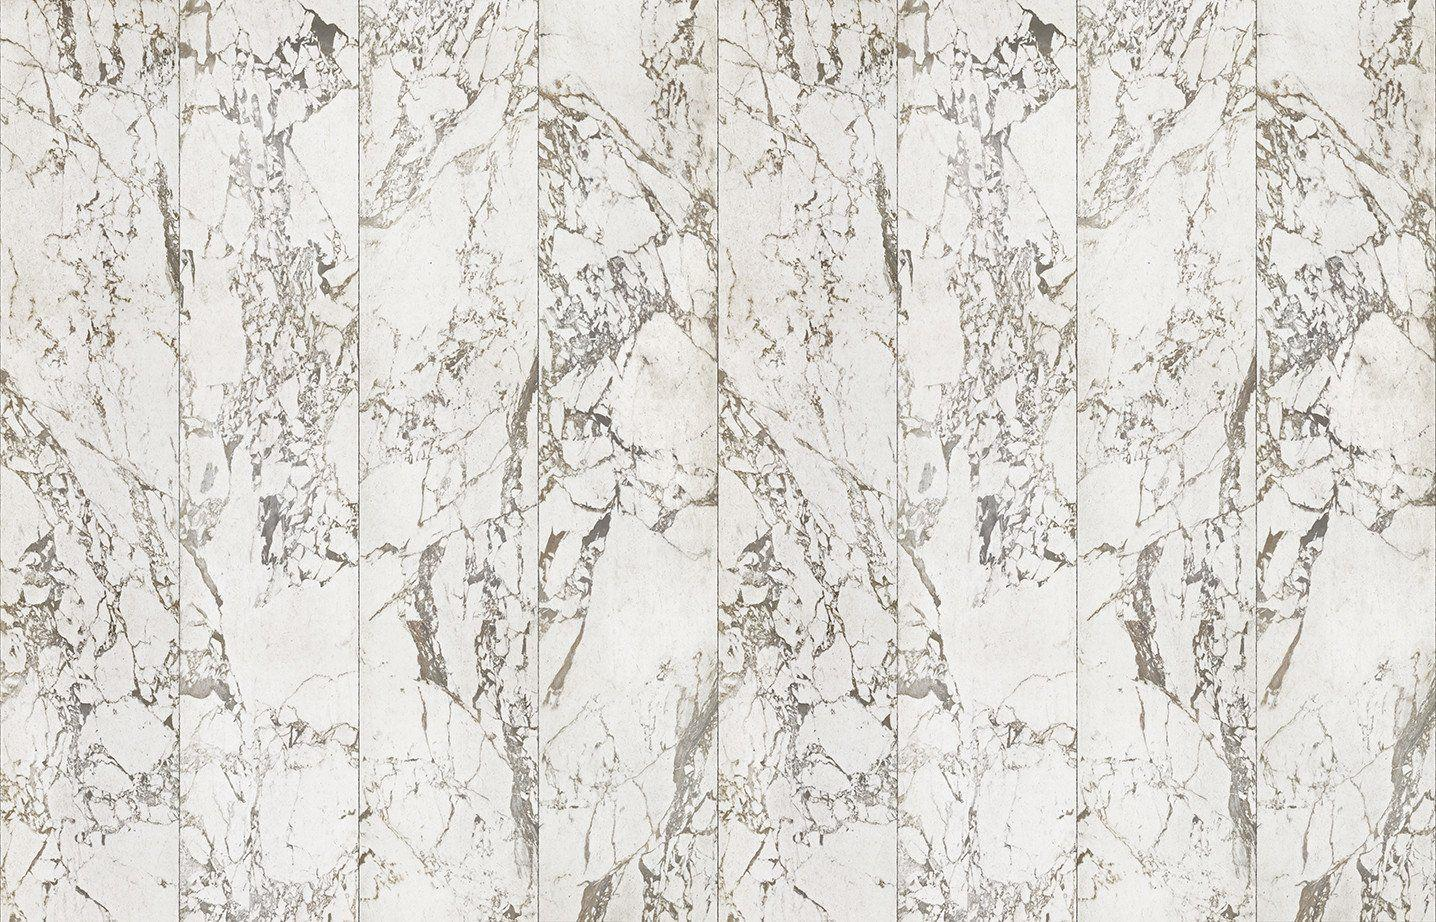 White Marble Wallpapers by Piet Hein Eek – NLXL